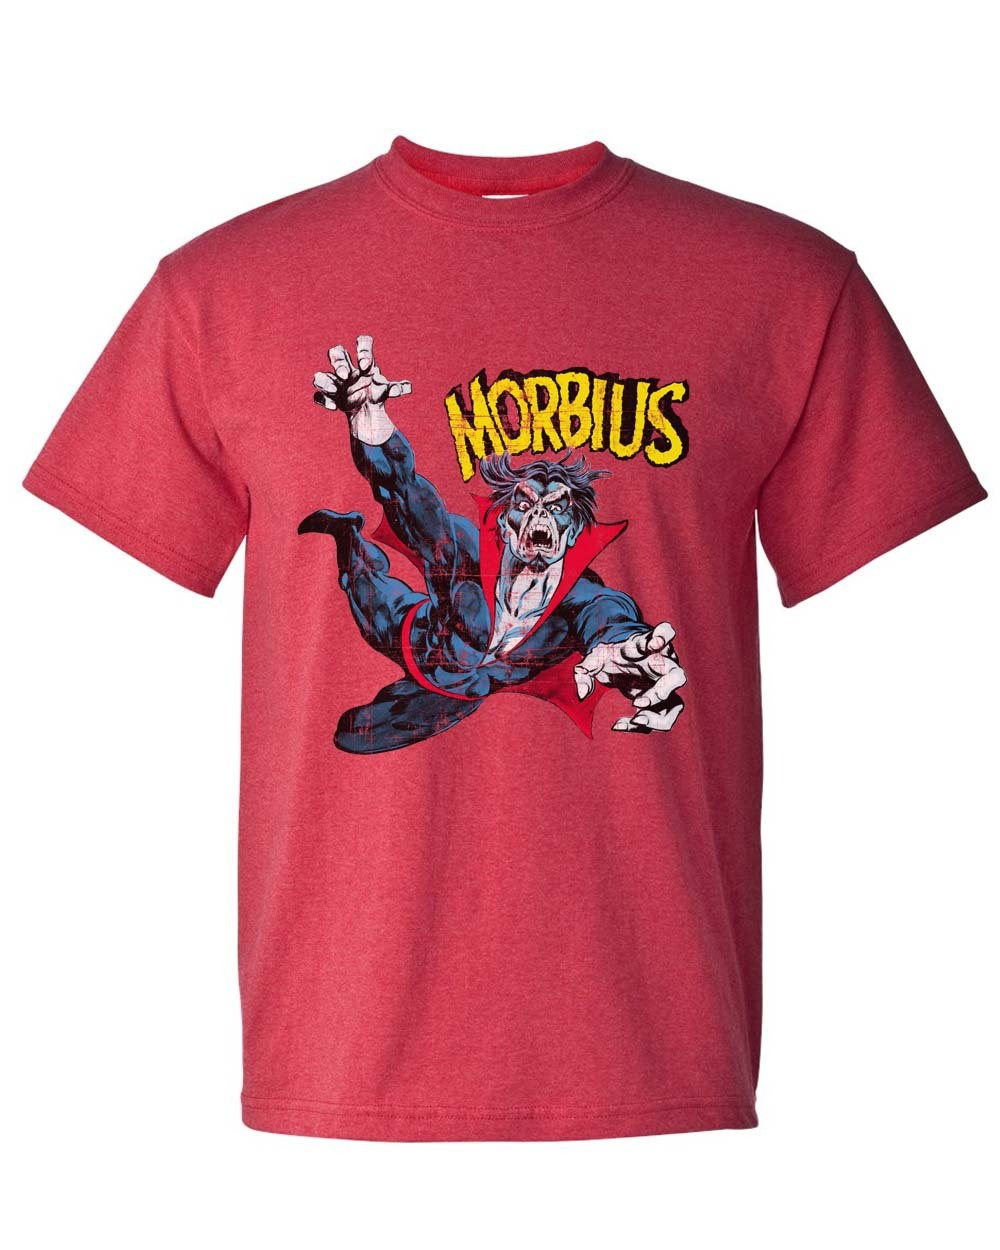 Cs retro vintage spider man villain classic horror comic books for sale online graphic tee store